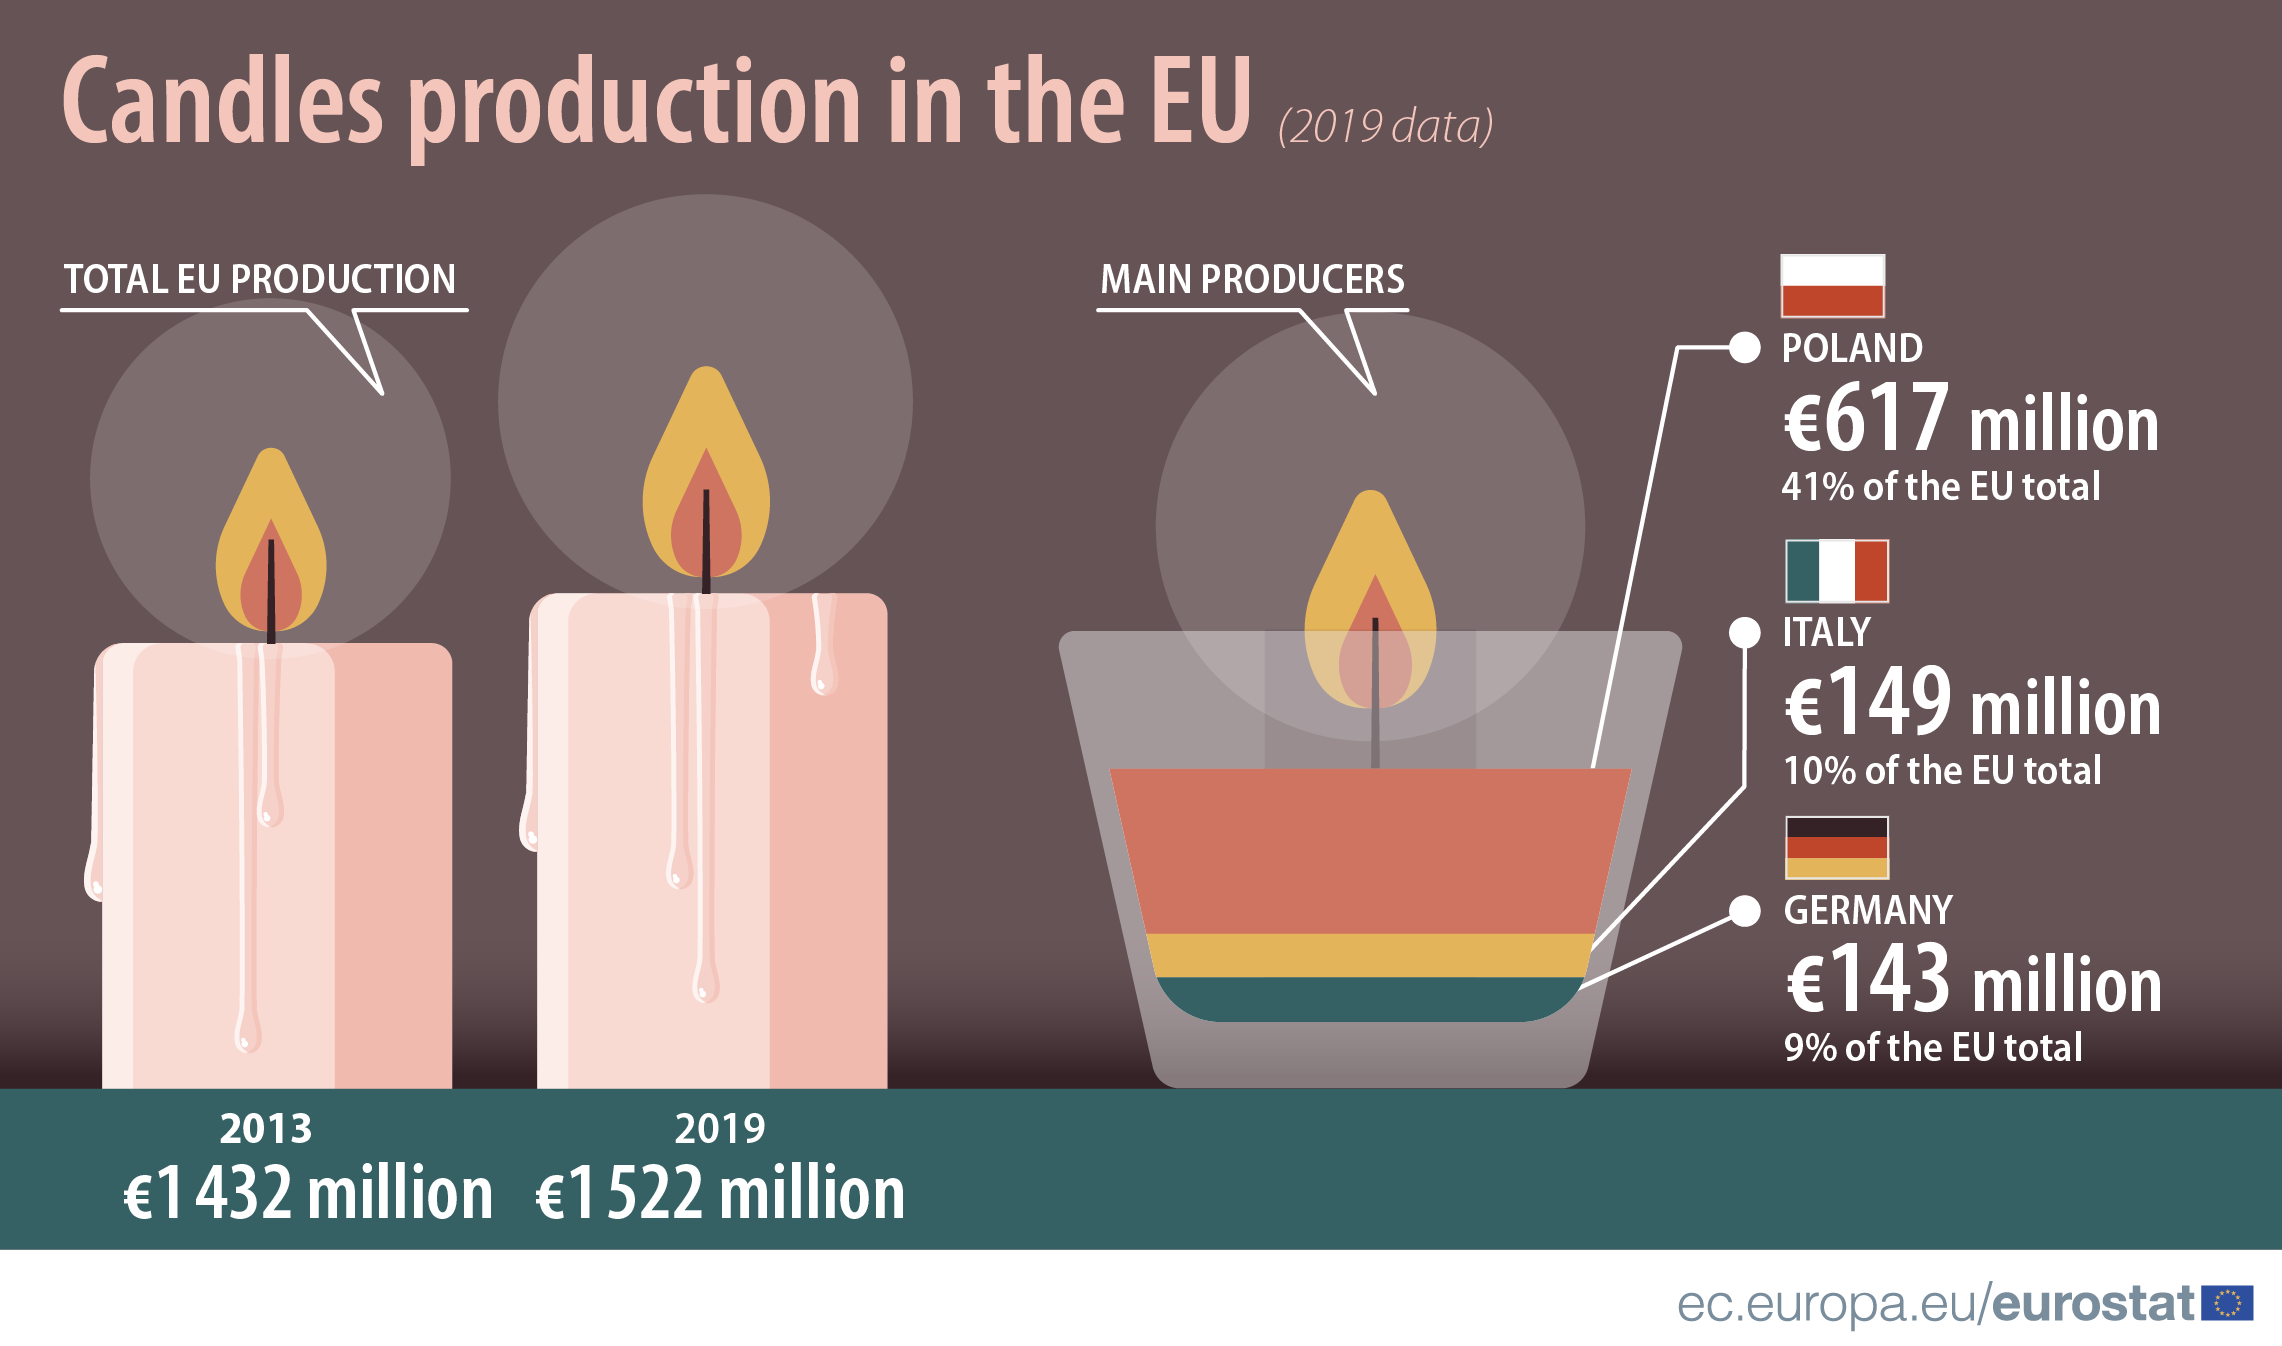 Infographic: Production of candles in the EU